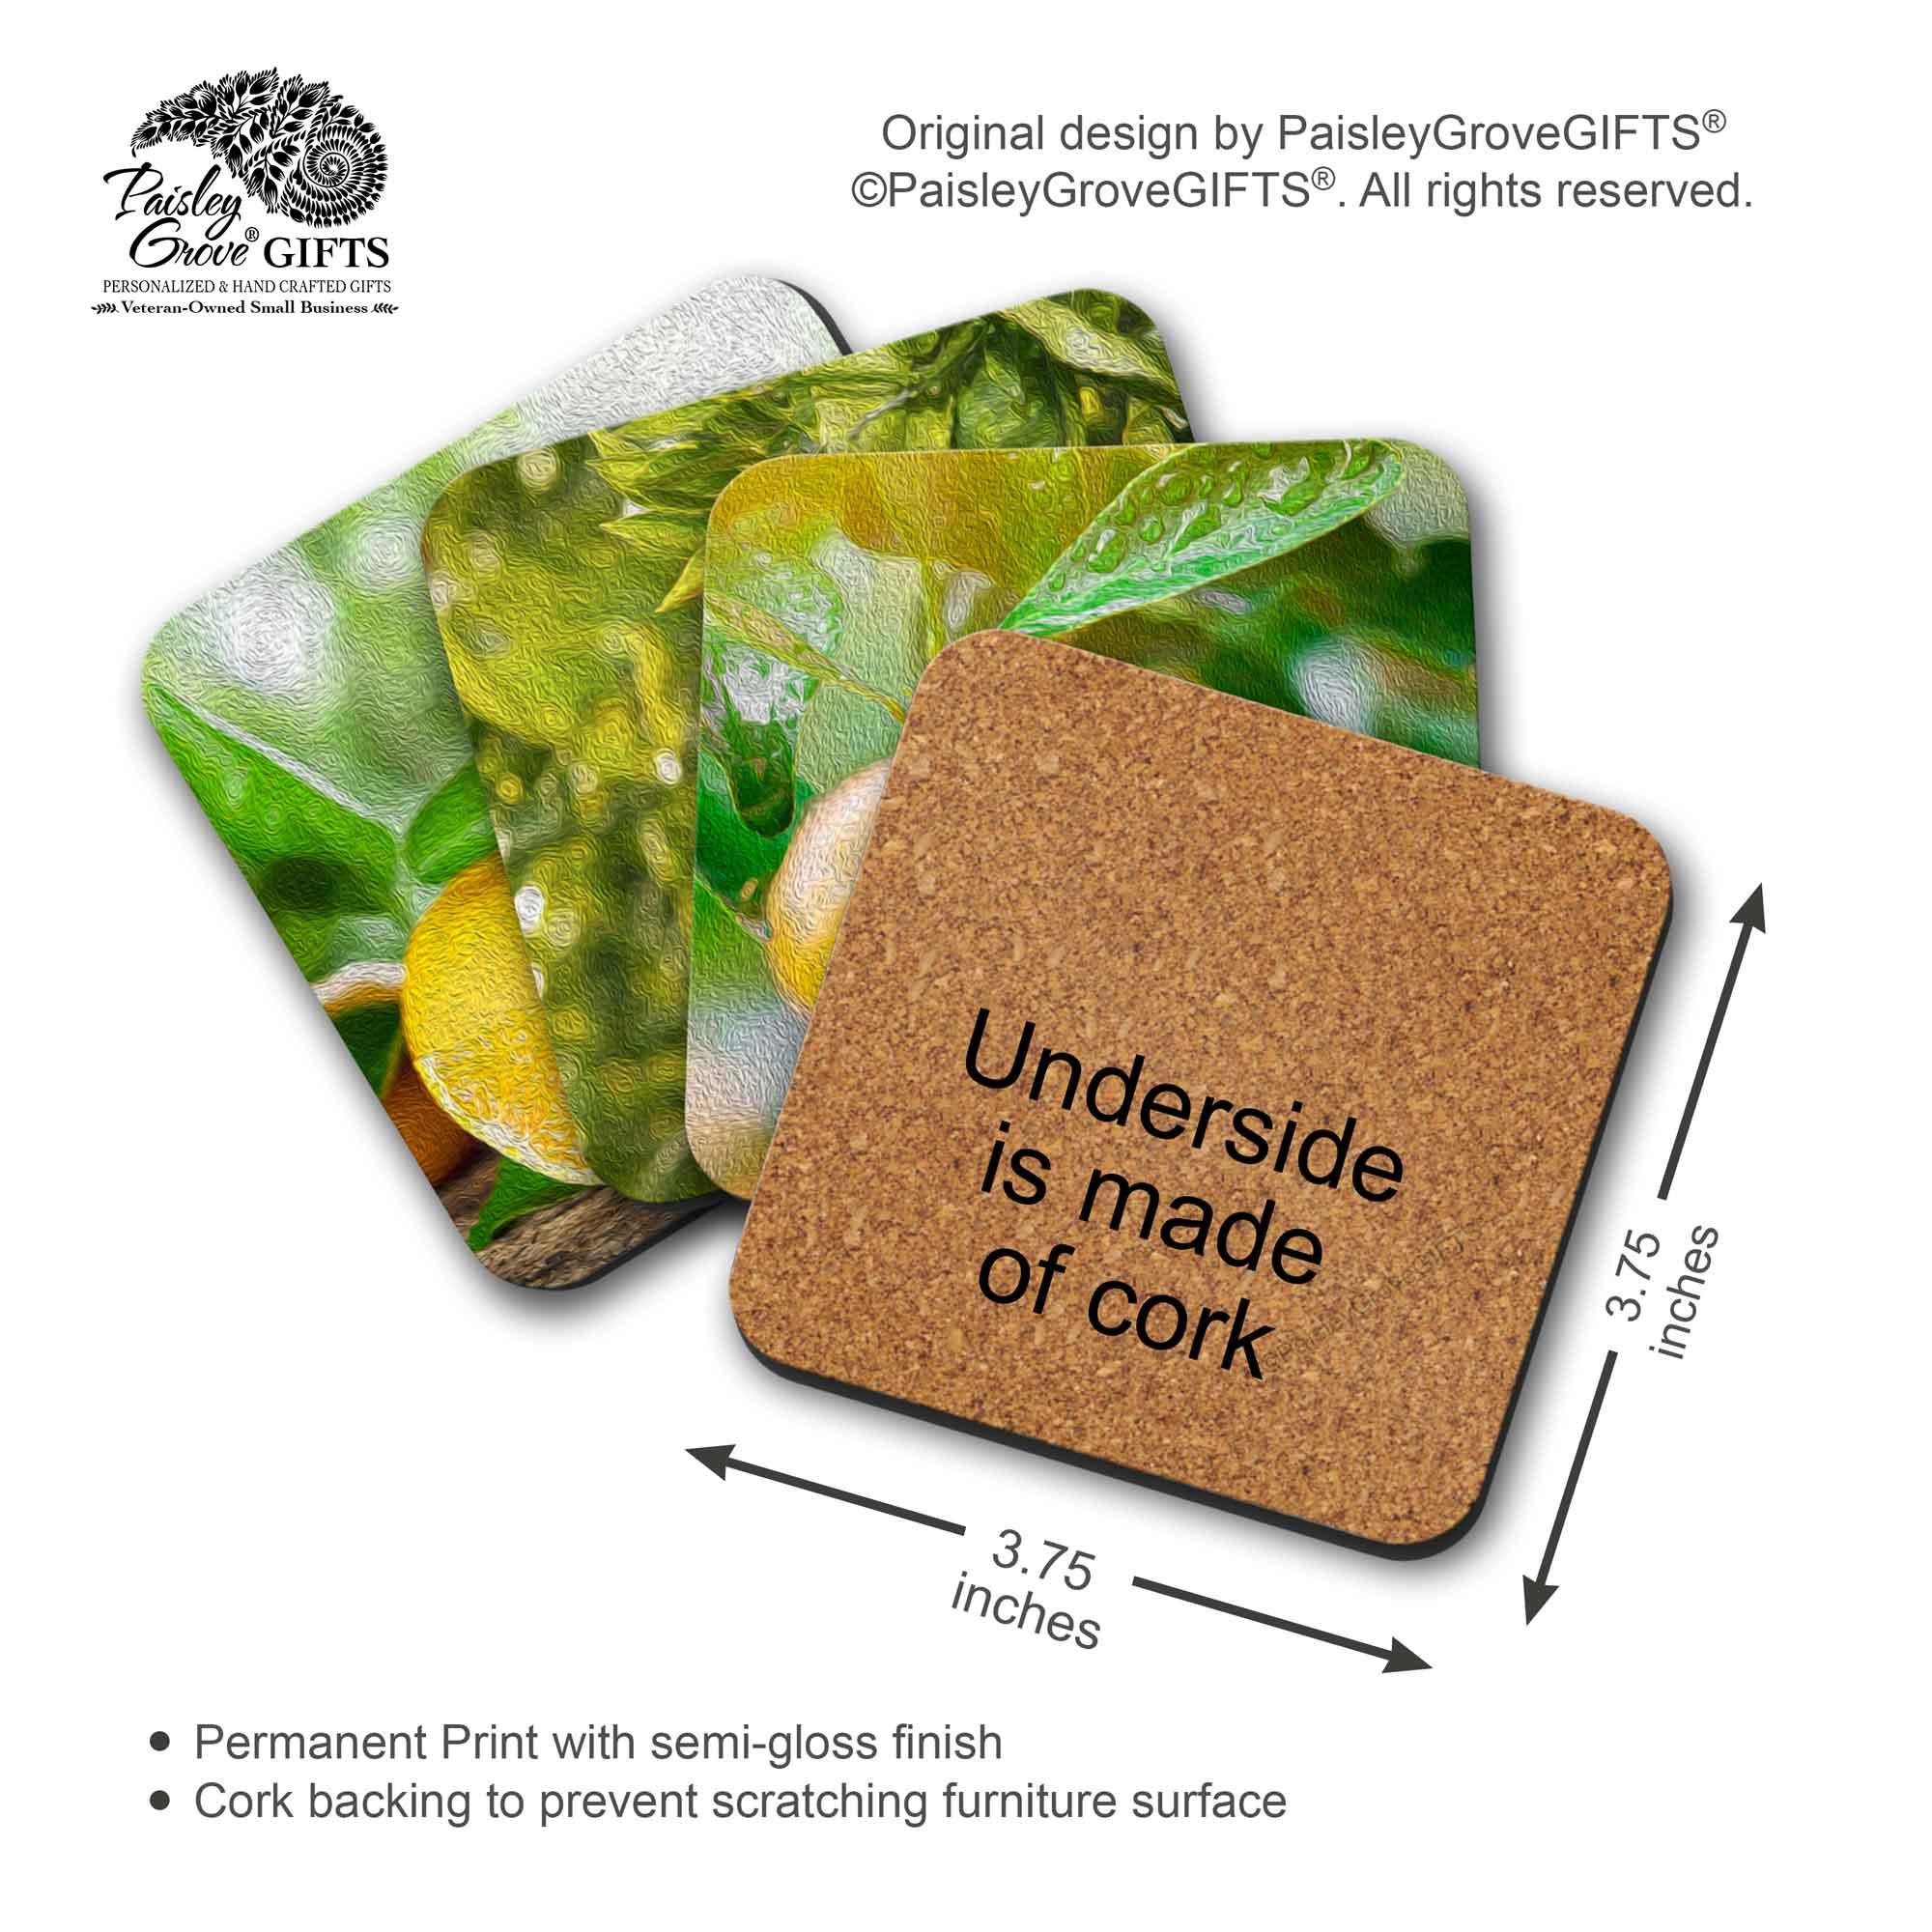 Copyright PaisleyGroveGIFTS S707b Measurement Information for Oil Painting Oranges on Coasters with Cork backing